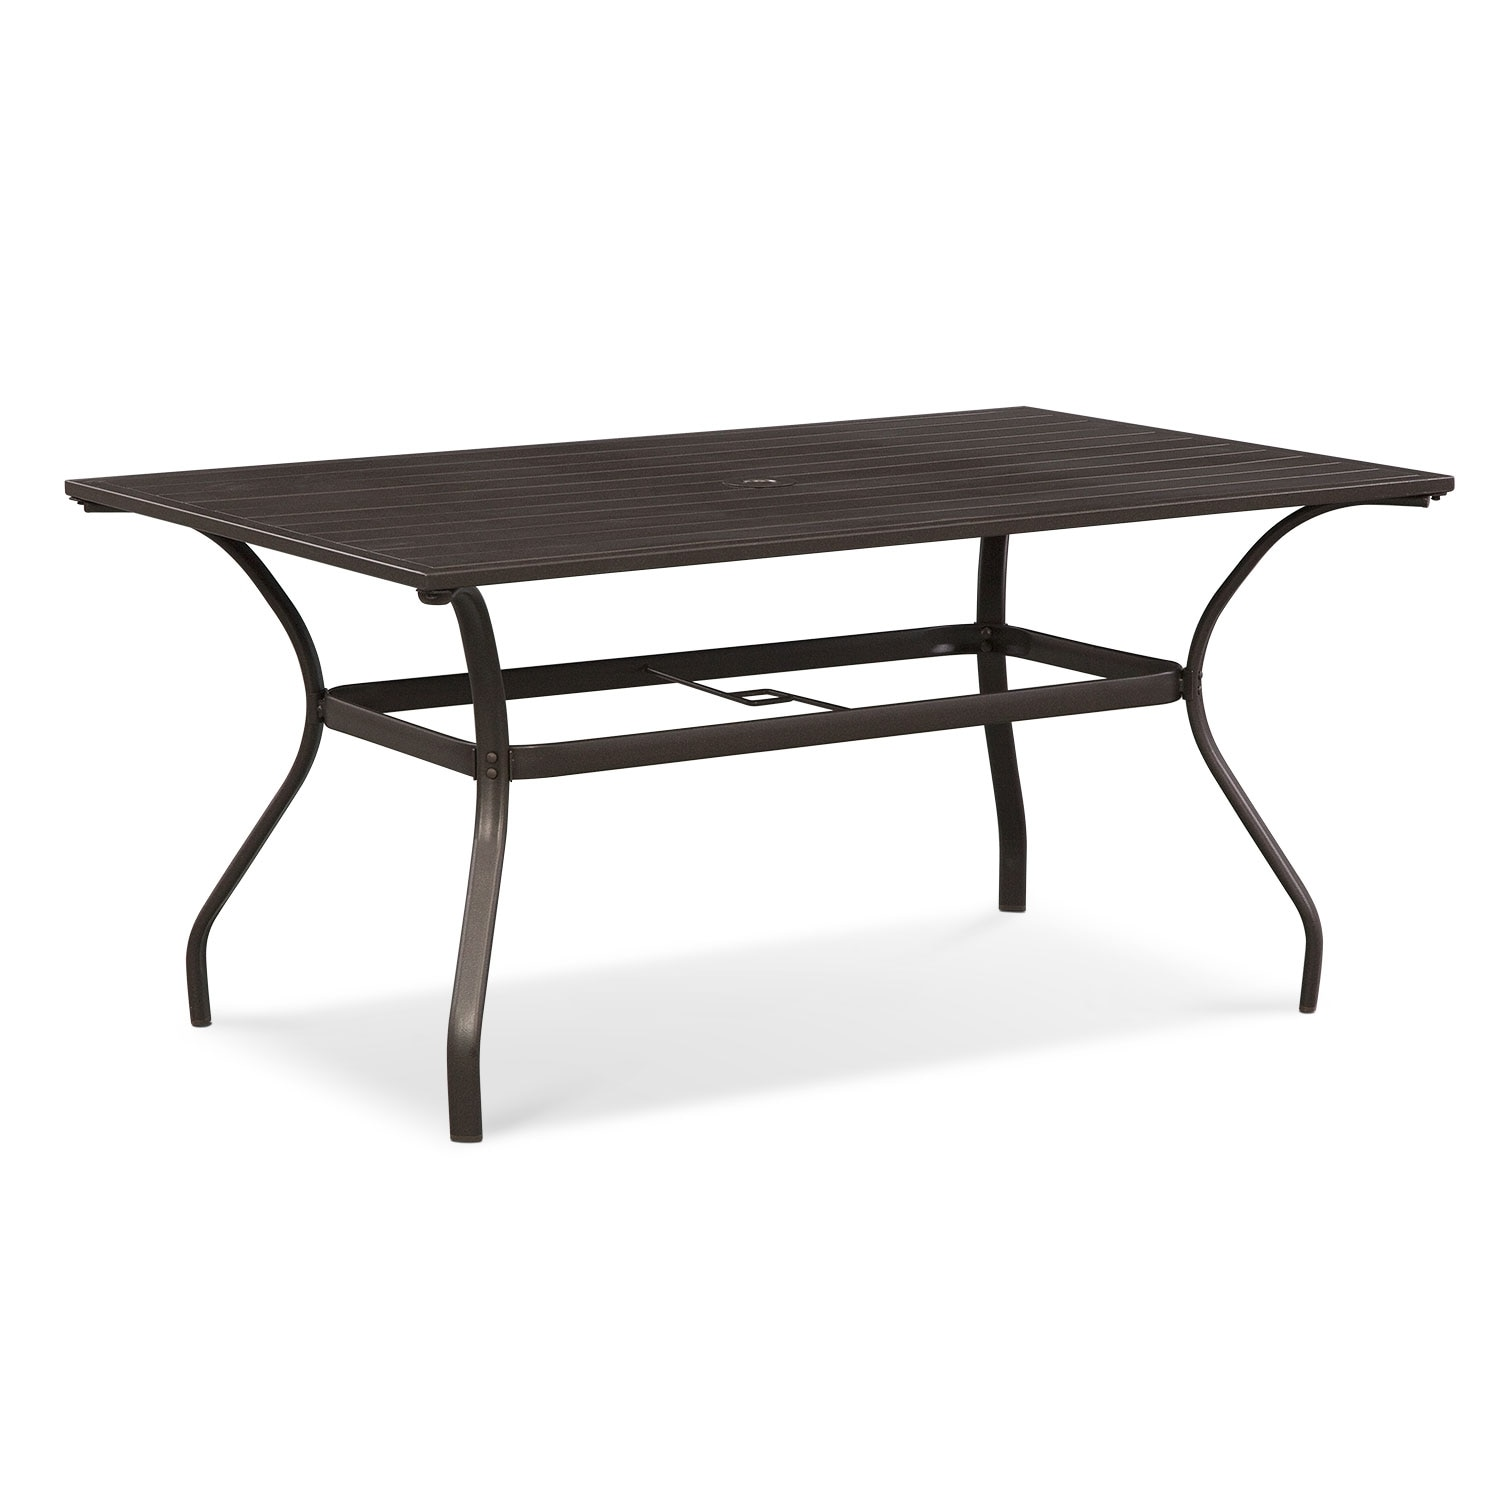 Terrace Dining Table - Brown